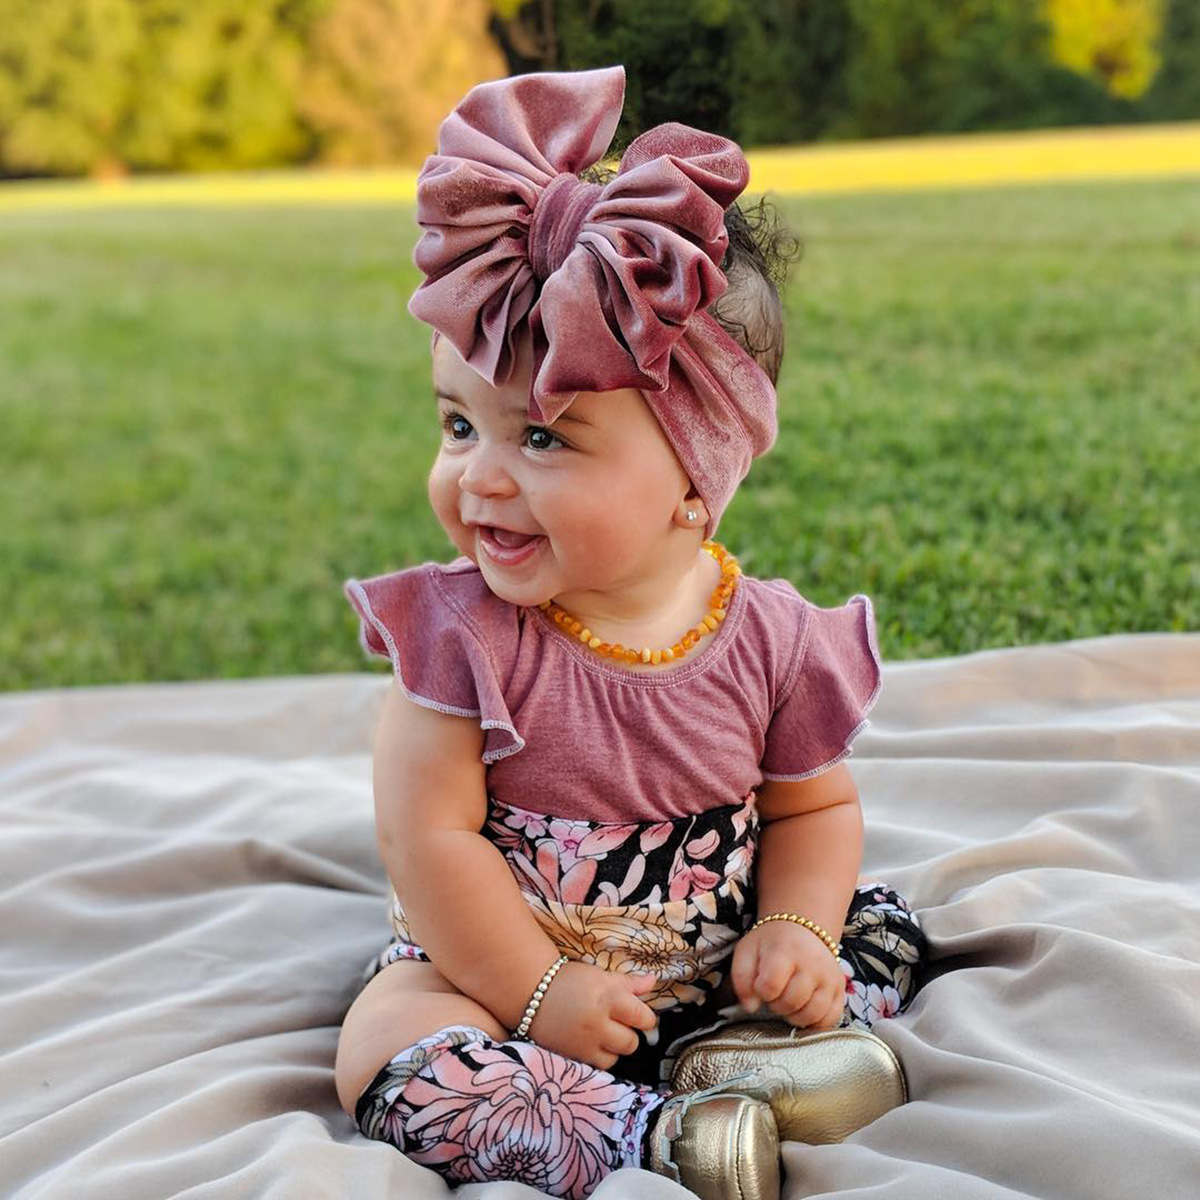 New Large Bow Baby Headband Velet Soft Bowknot Girl Accessories Hair Solid Messy Bows Toddler Headbands Baby Head Wraps Turban